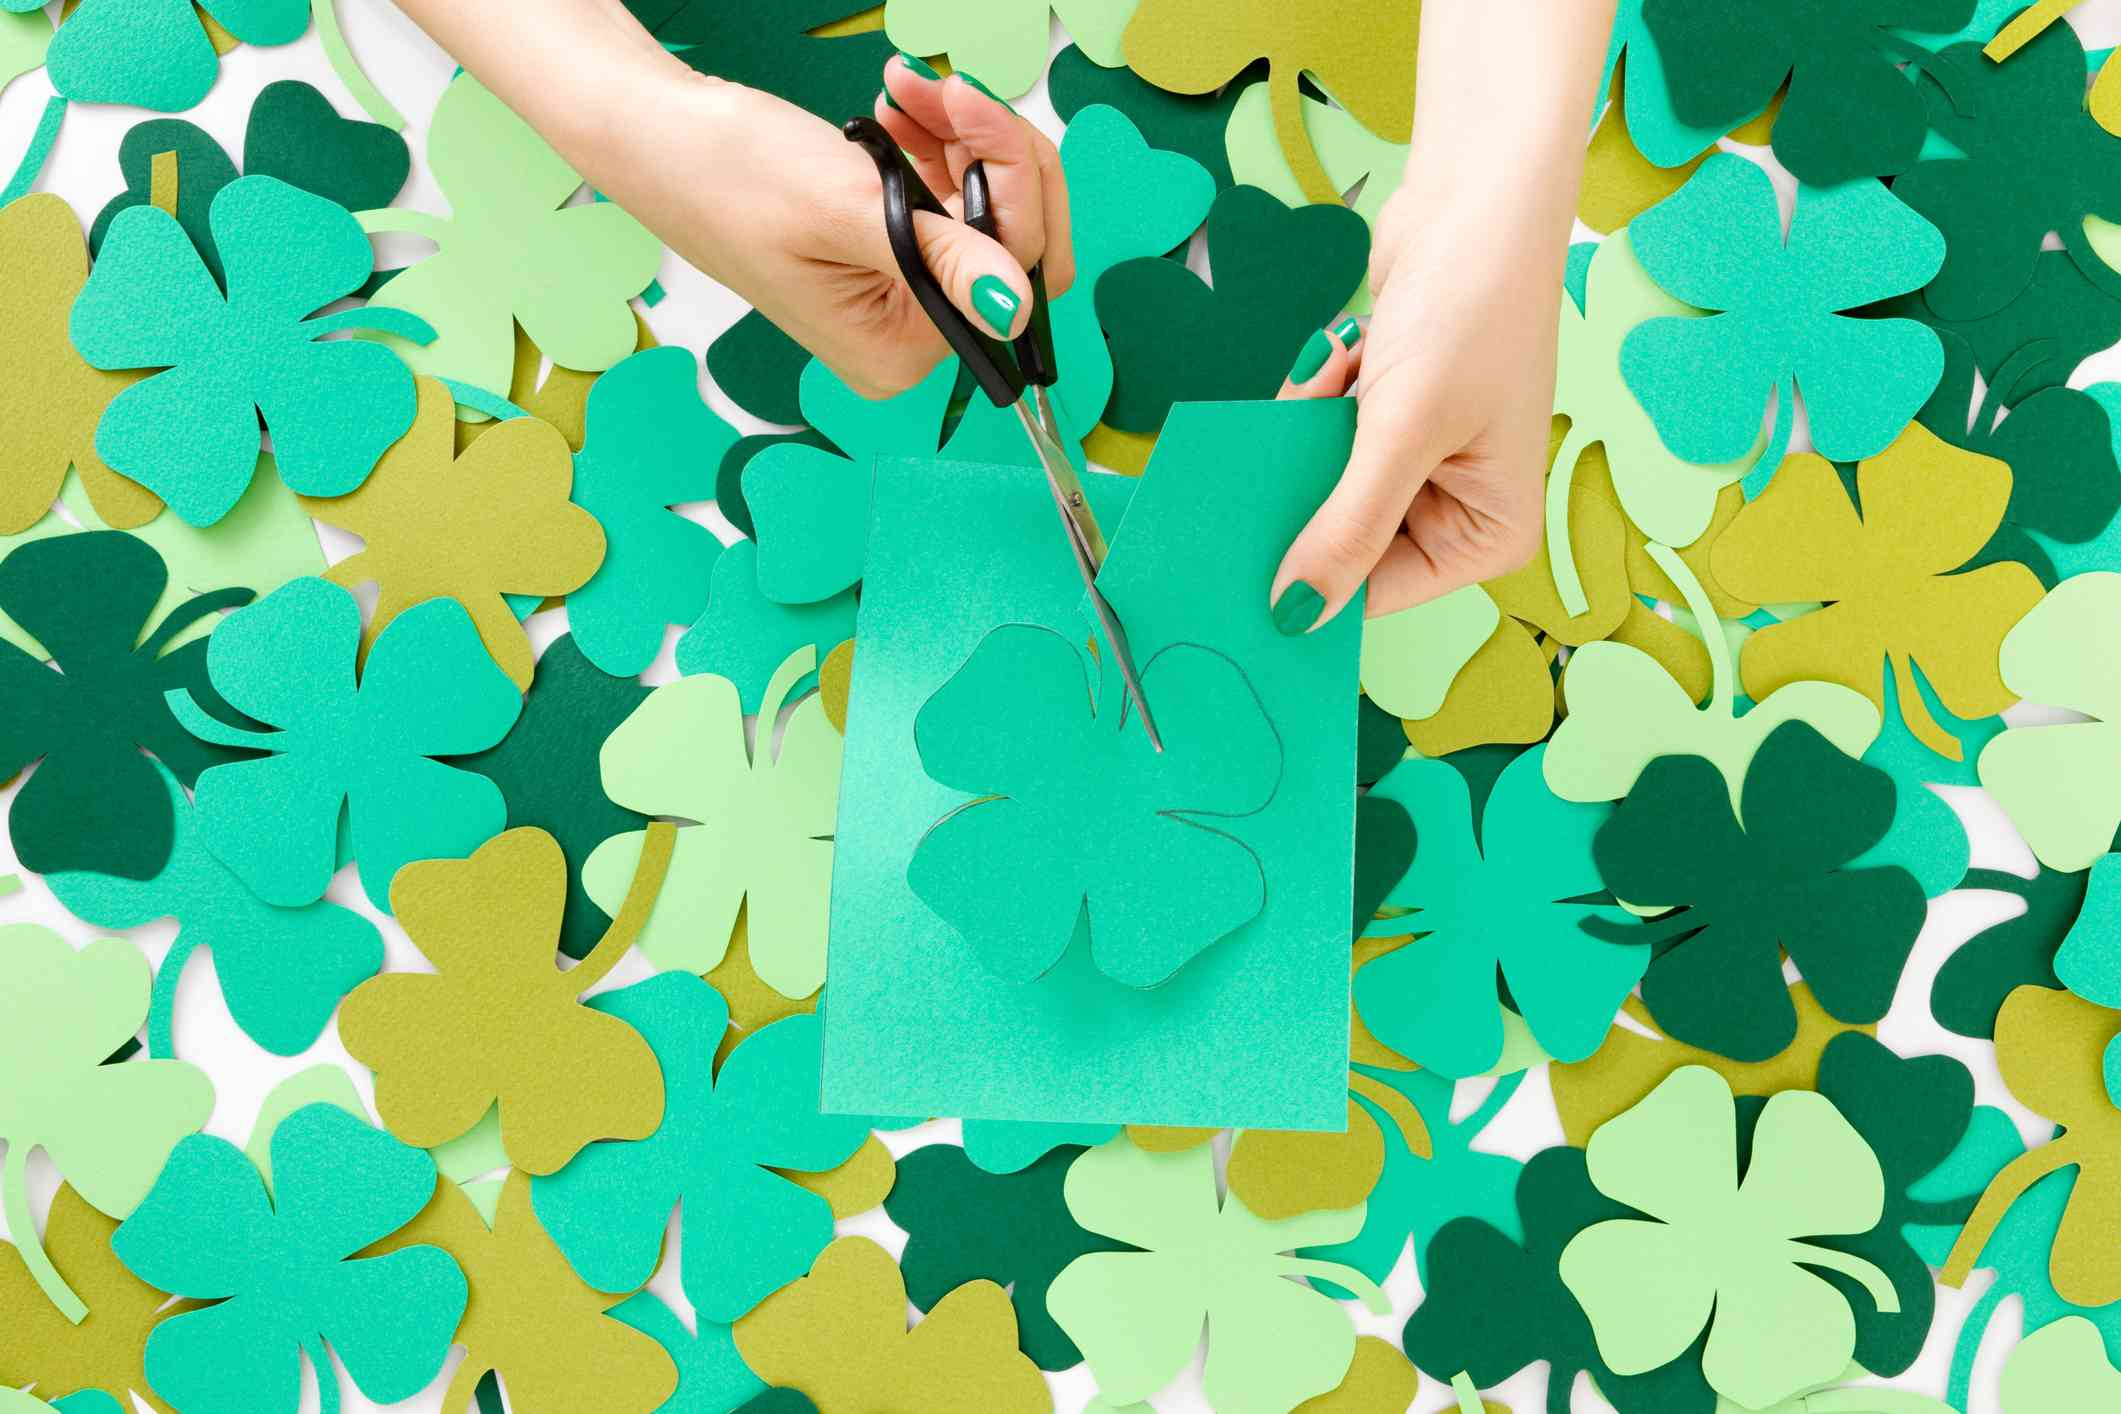 woman cutting out paper shamrocks